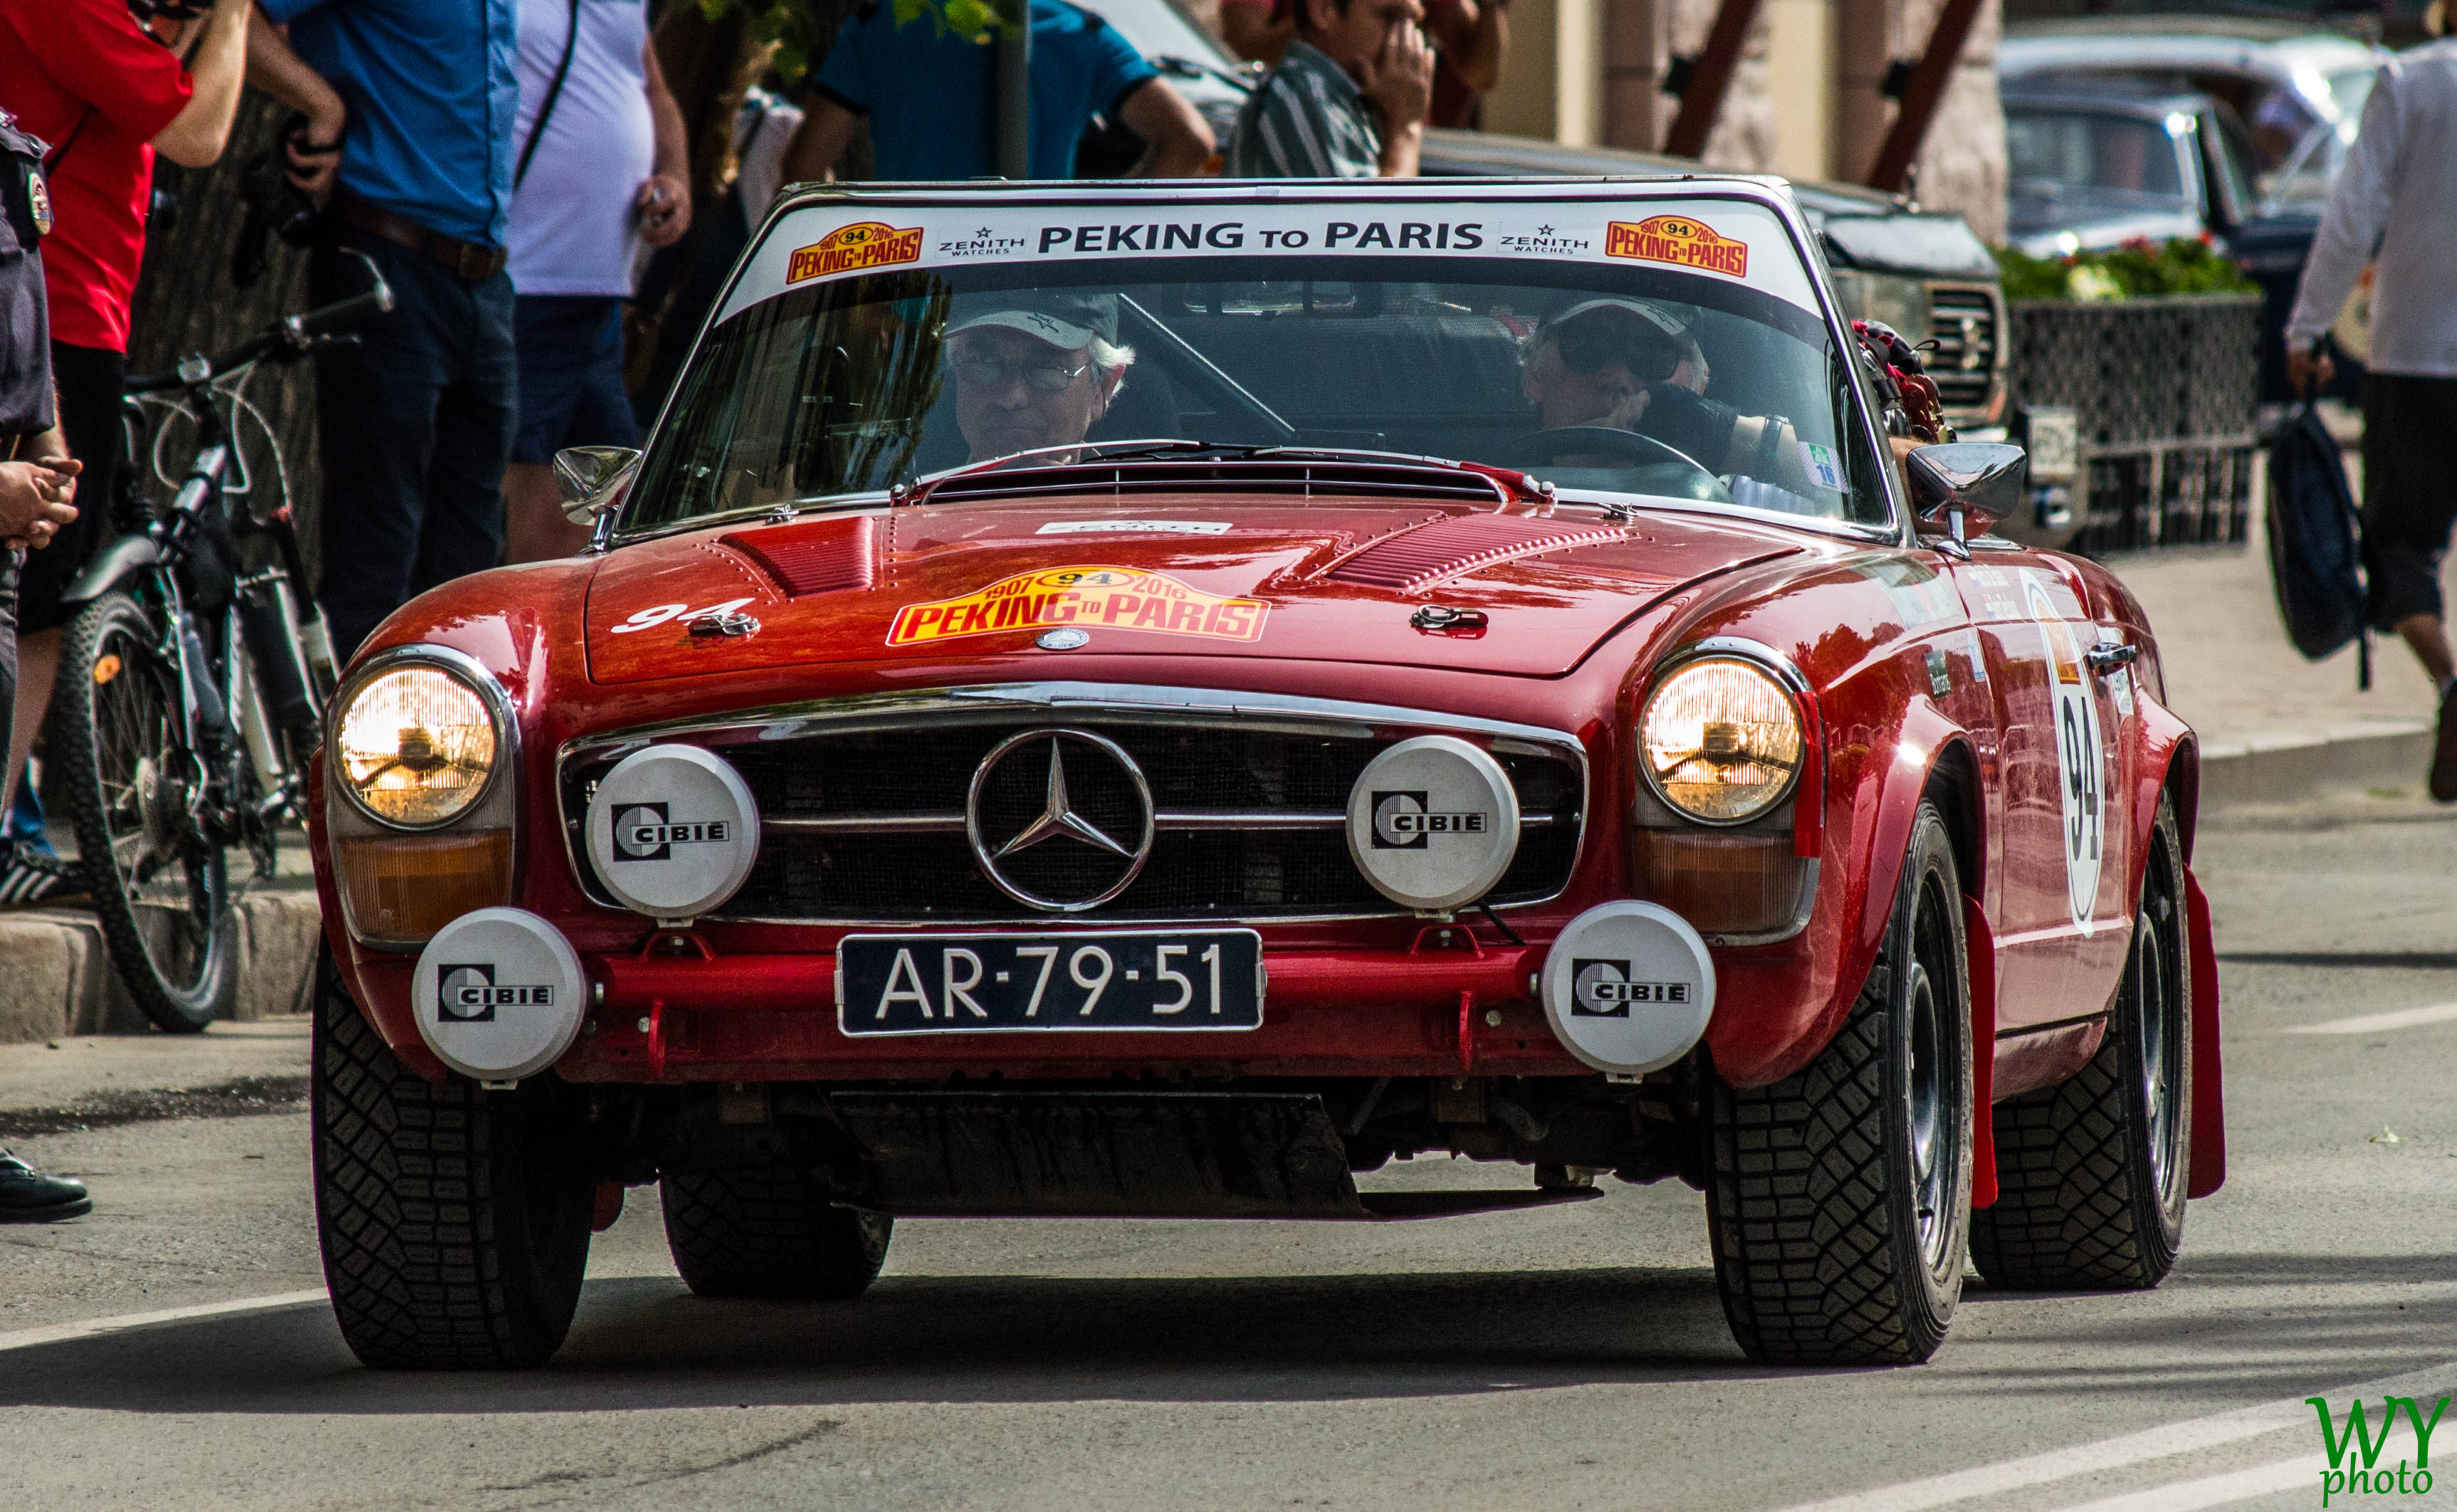 1966 mercedes 230 sl - mick de haas & anthony verloop photo